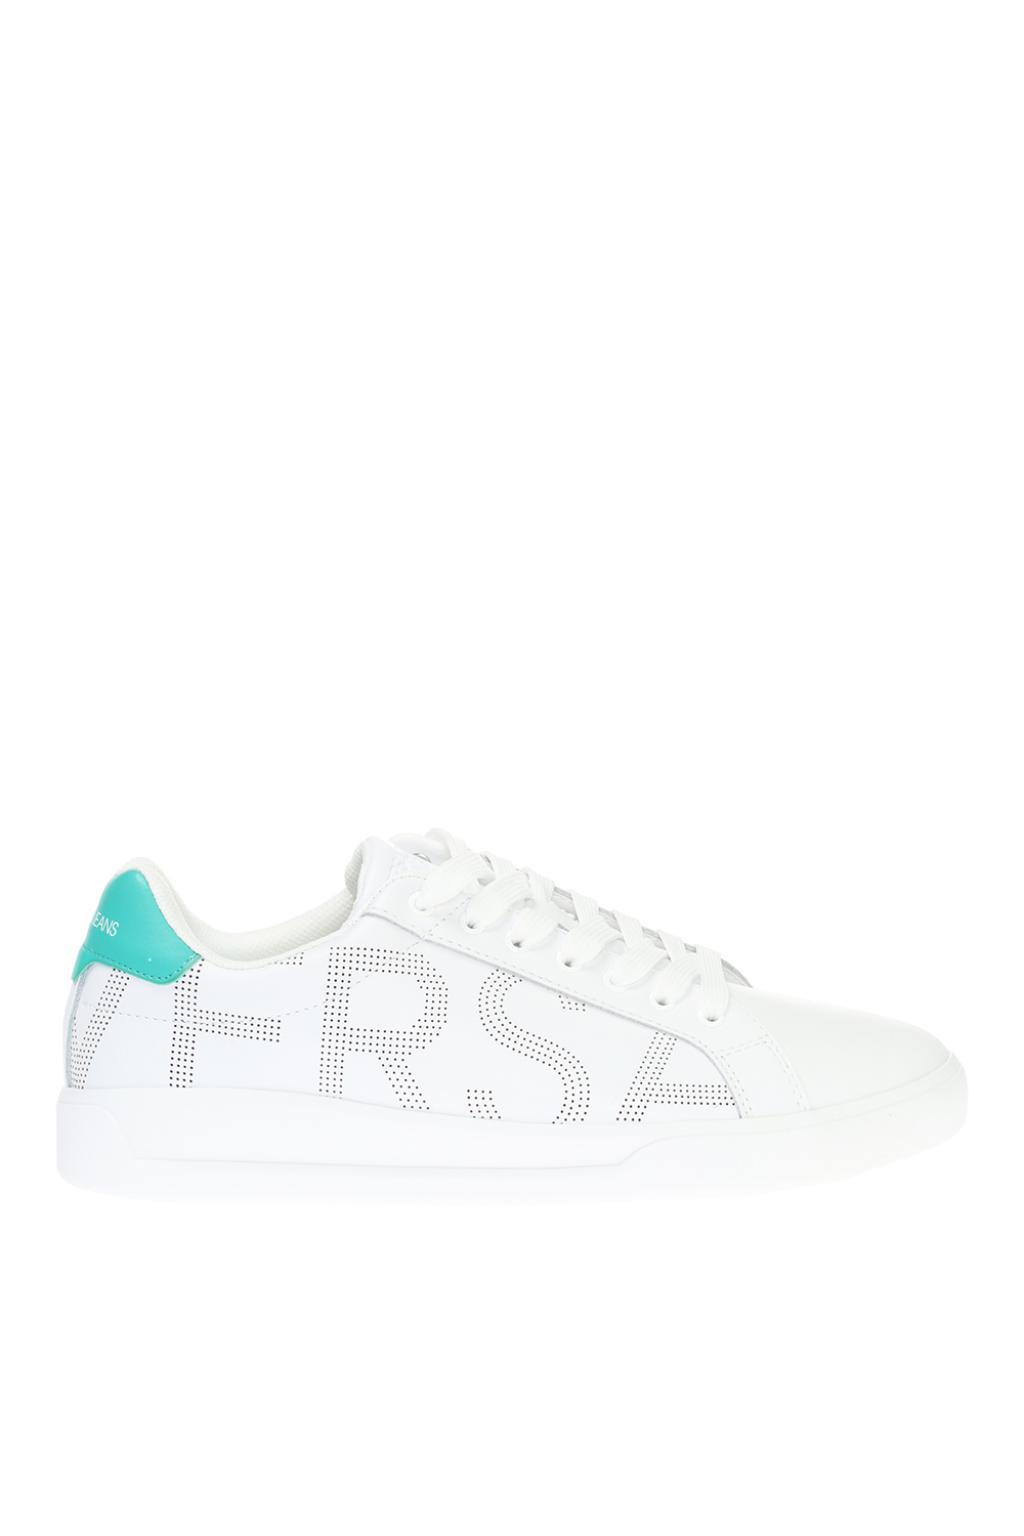 438411a5 Lyst - Versace Jeans Branded Sneakers in White for Men